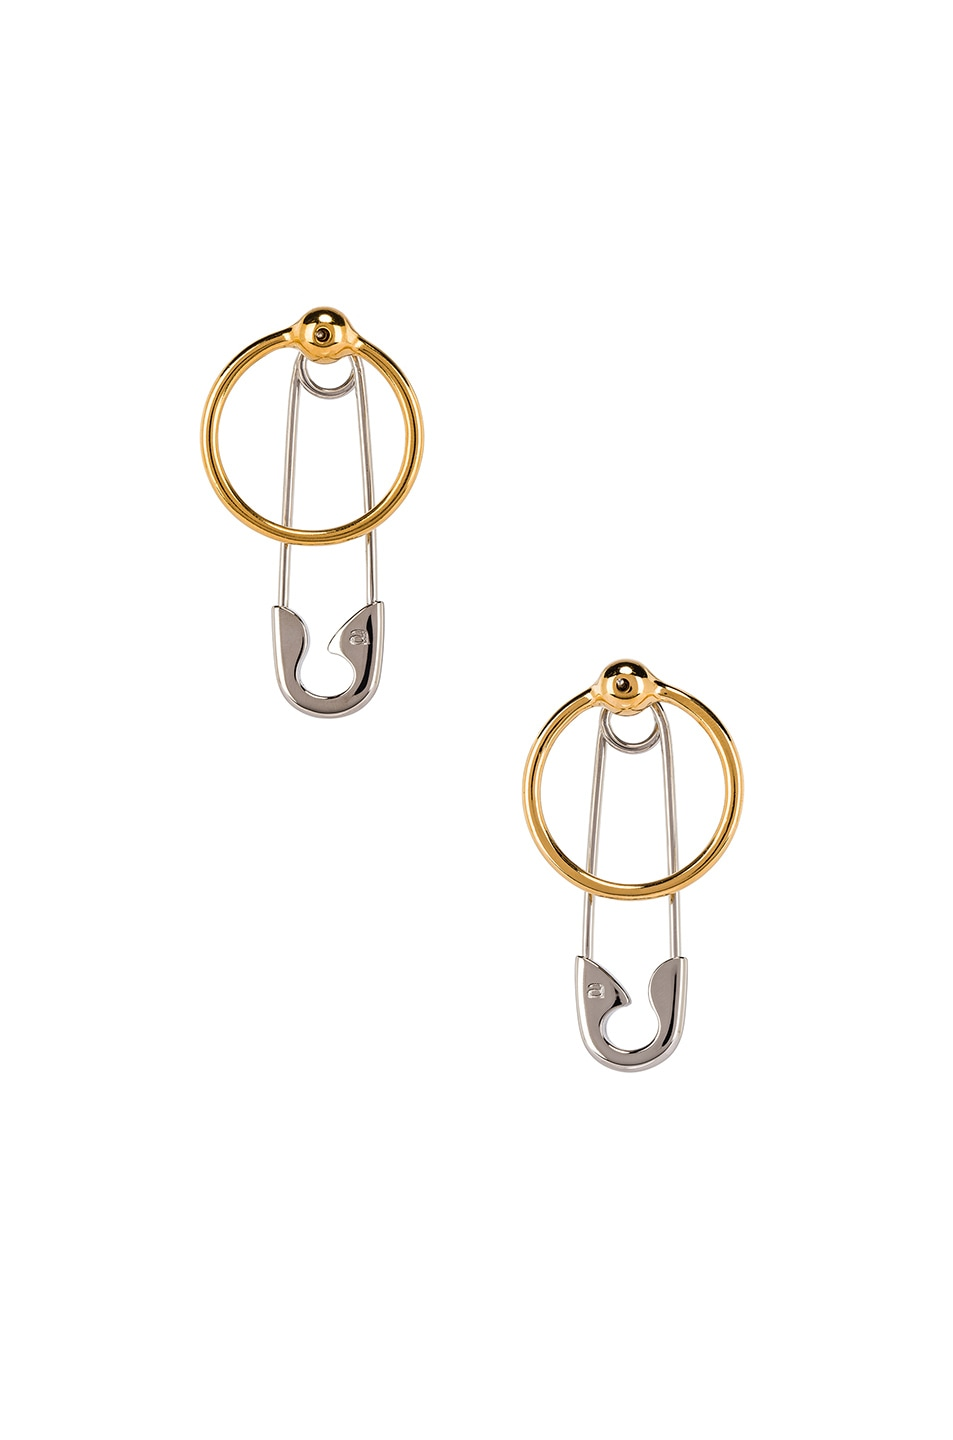 Image 3 of Alexander Wang Safety Pin and Hoop Earrings in Silver and Gold